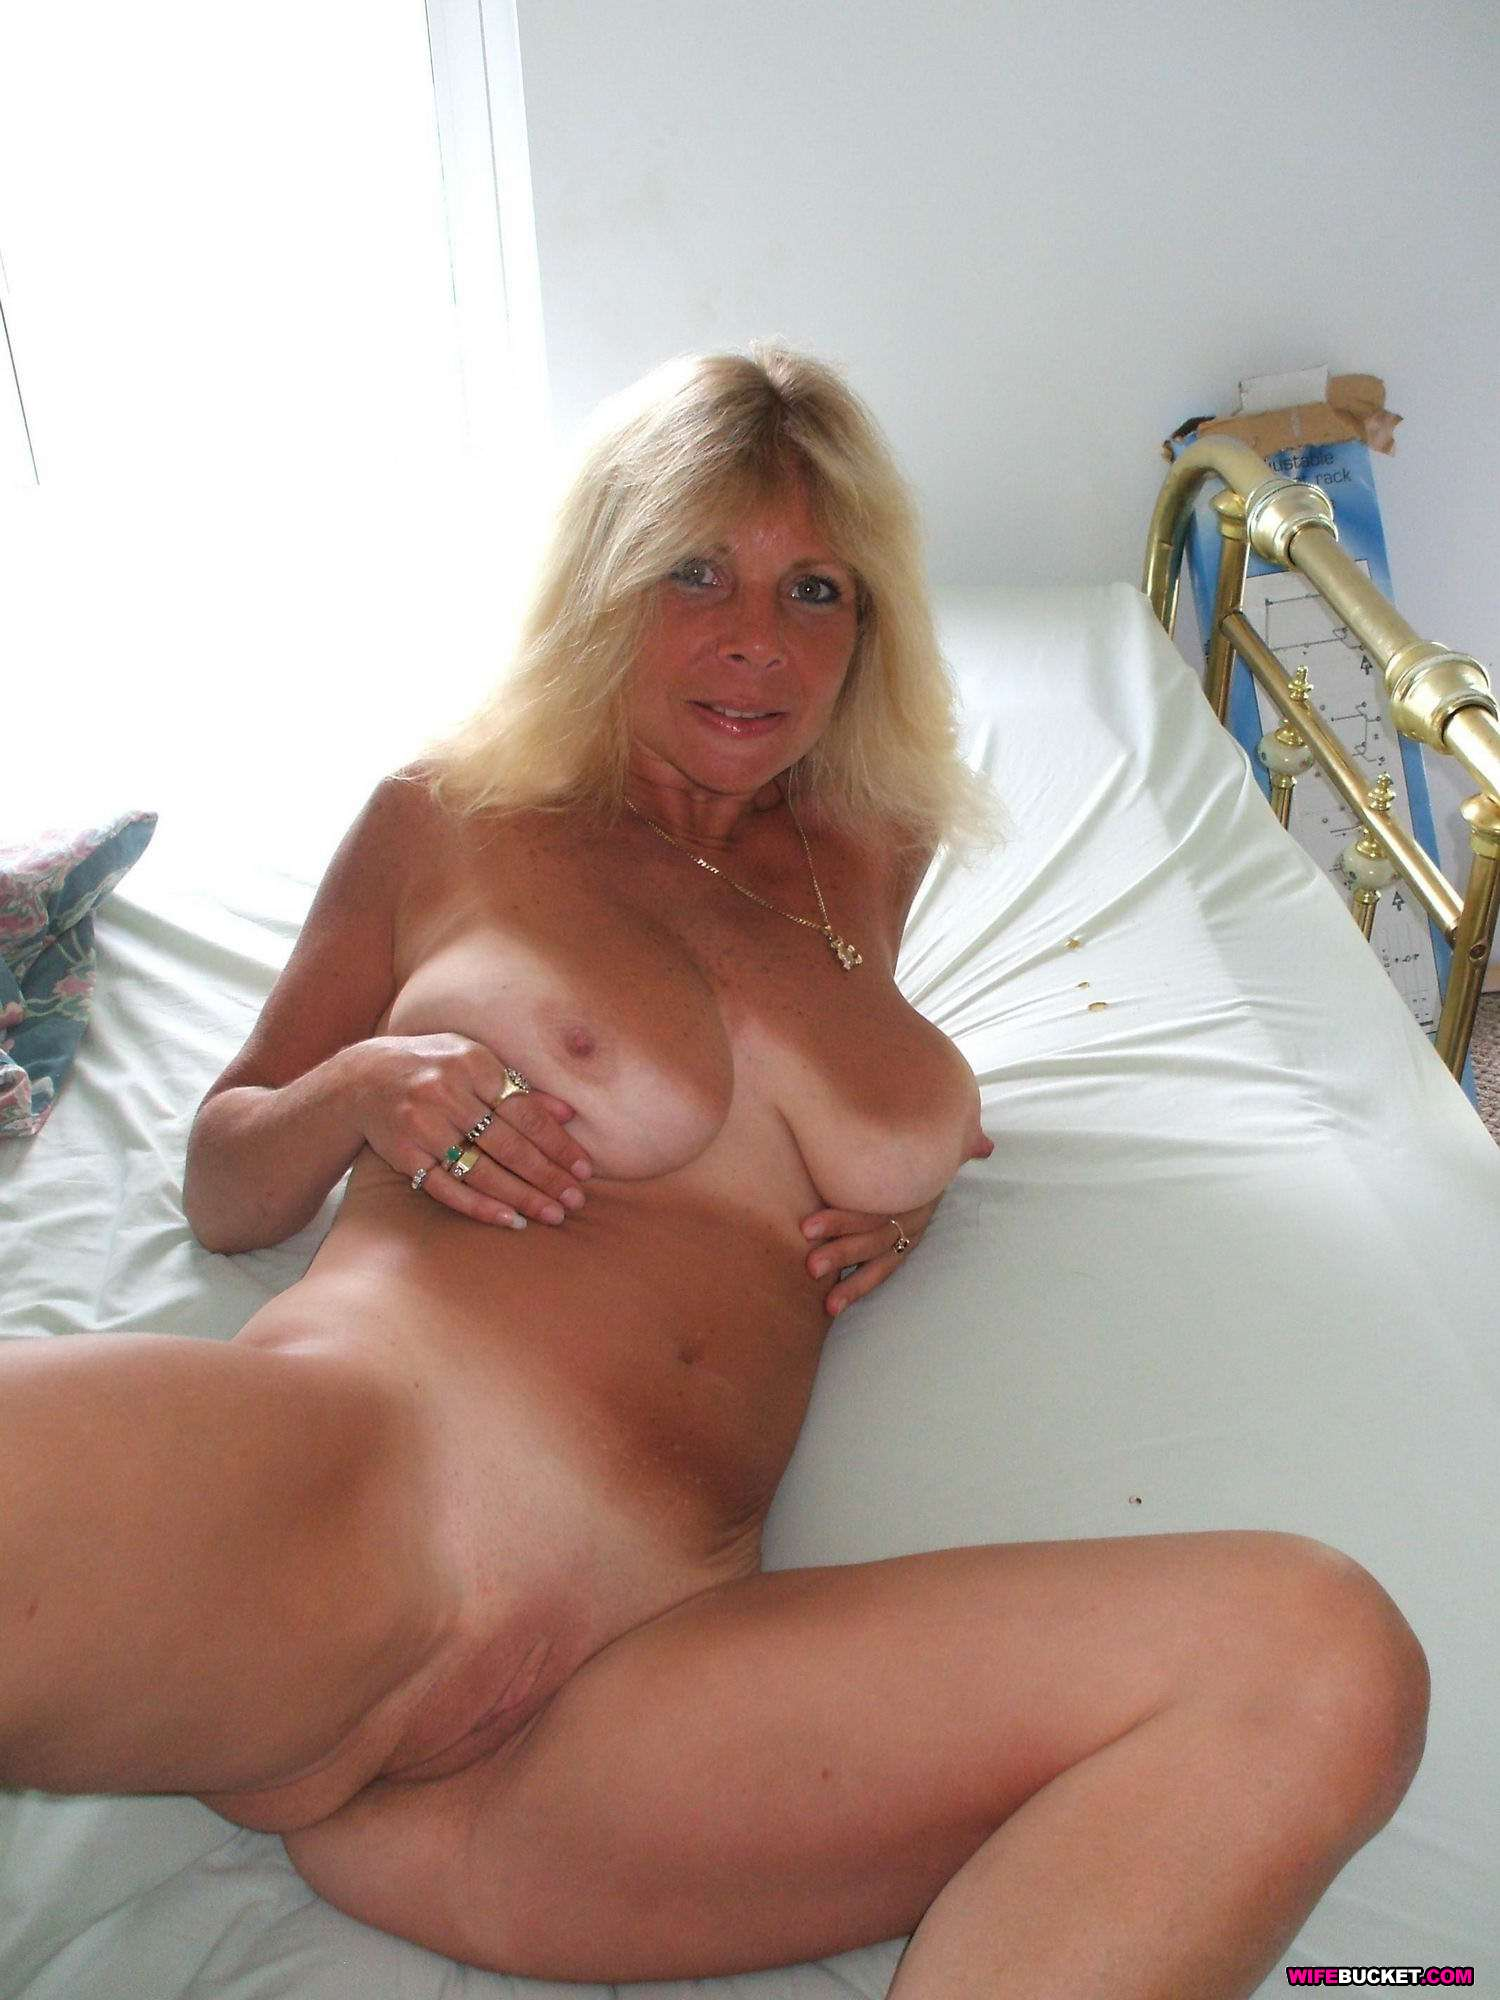 boys fingering in the pussy